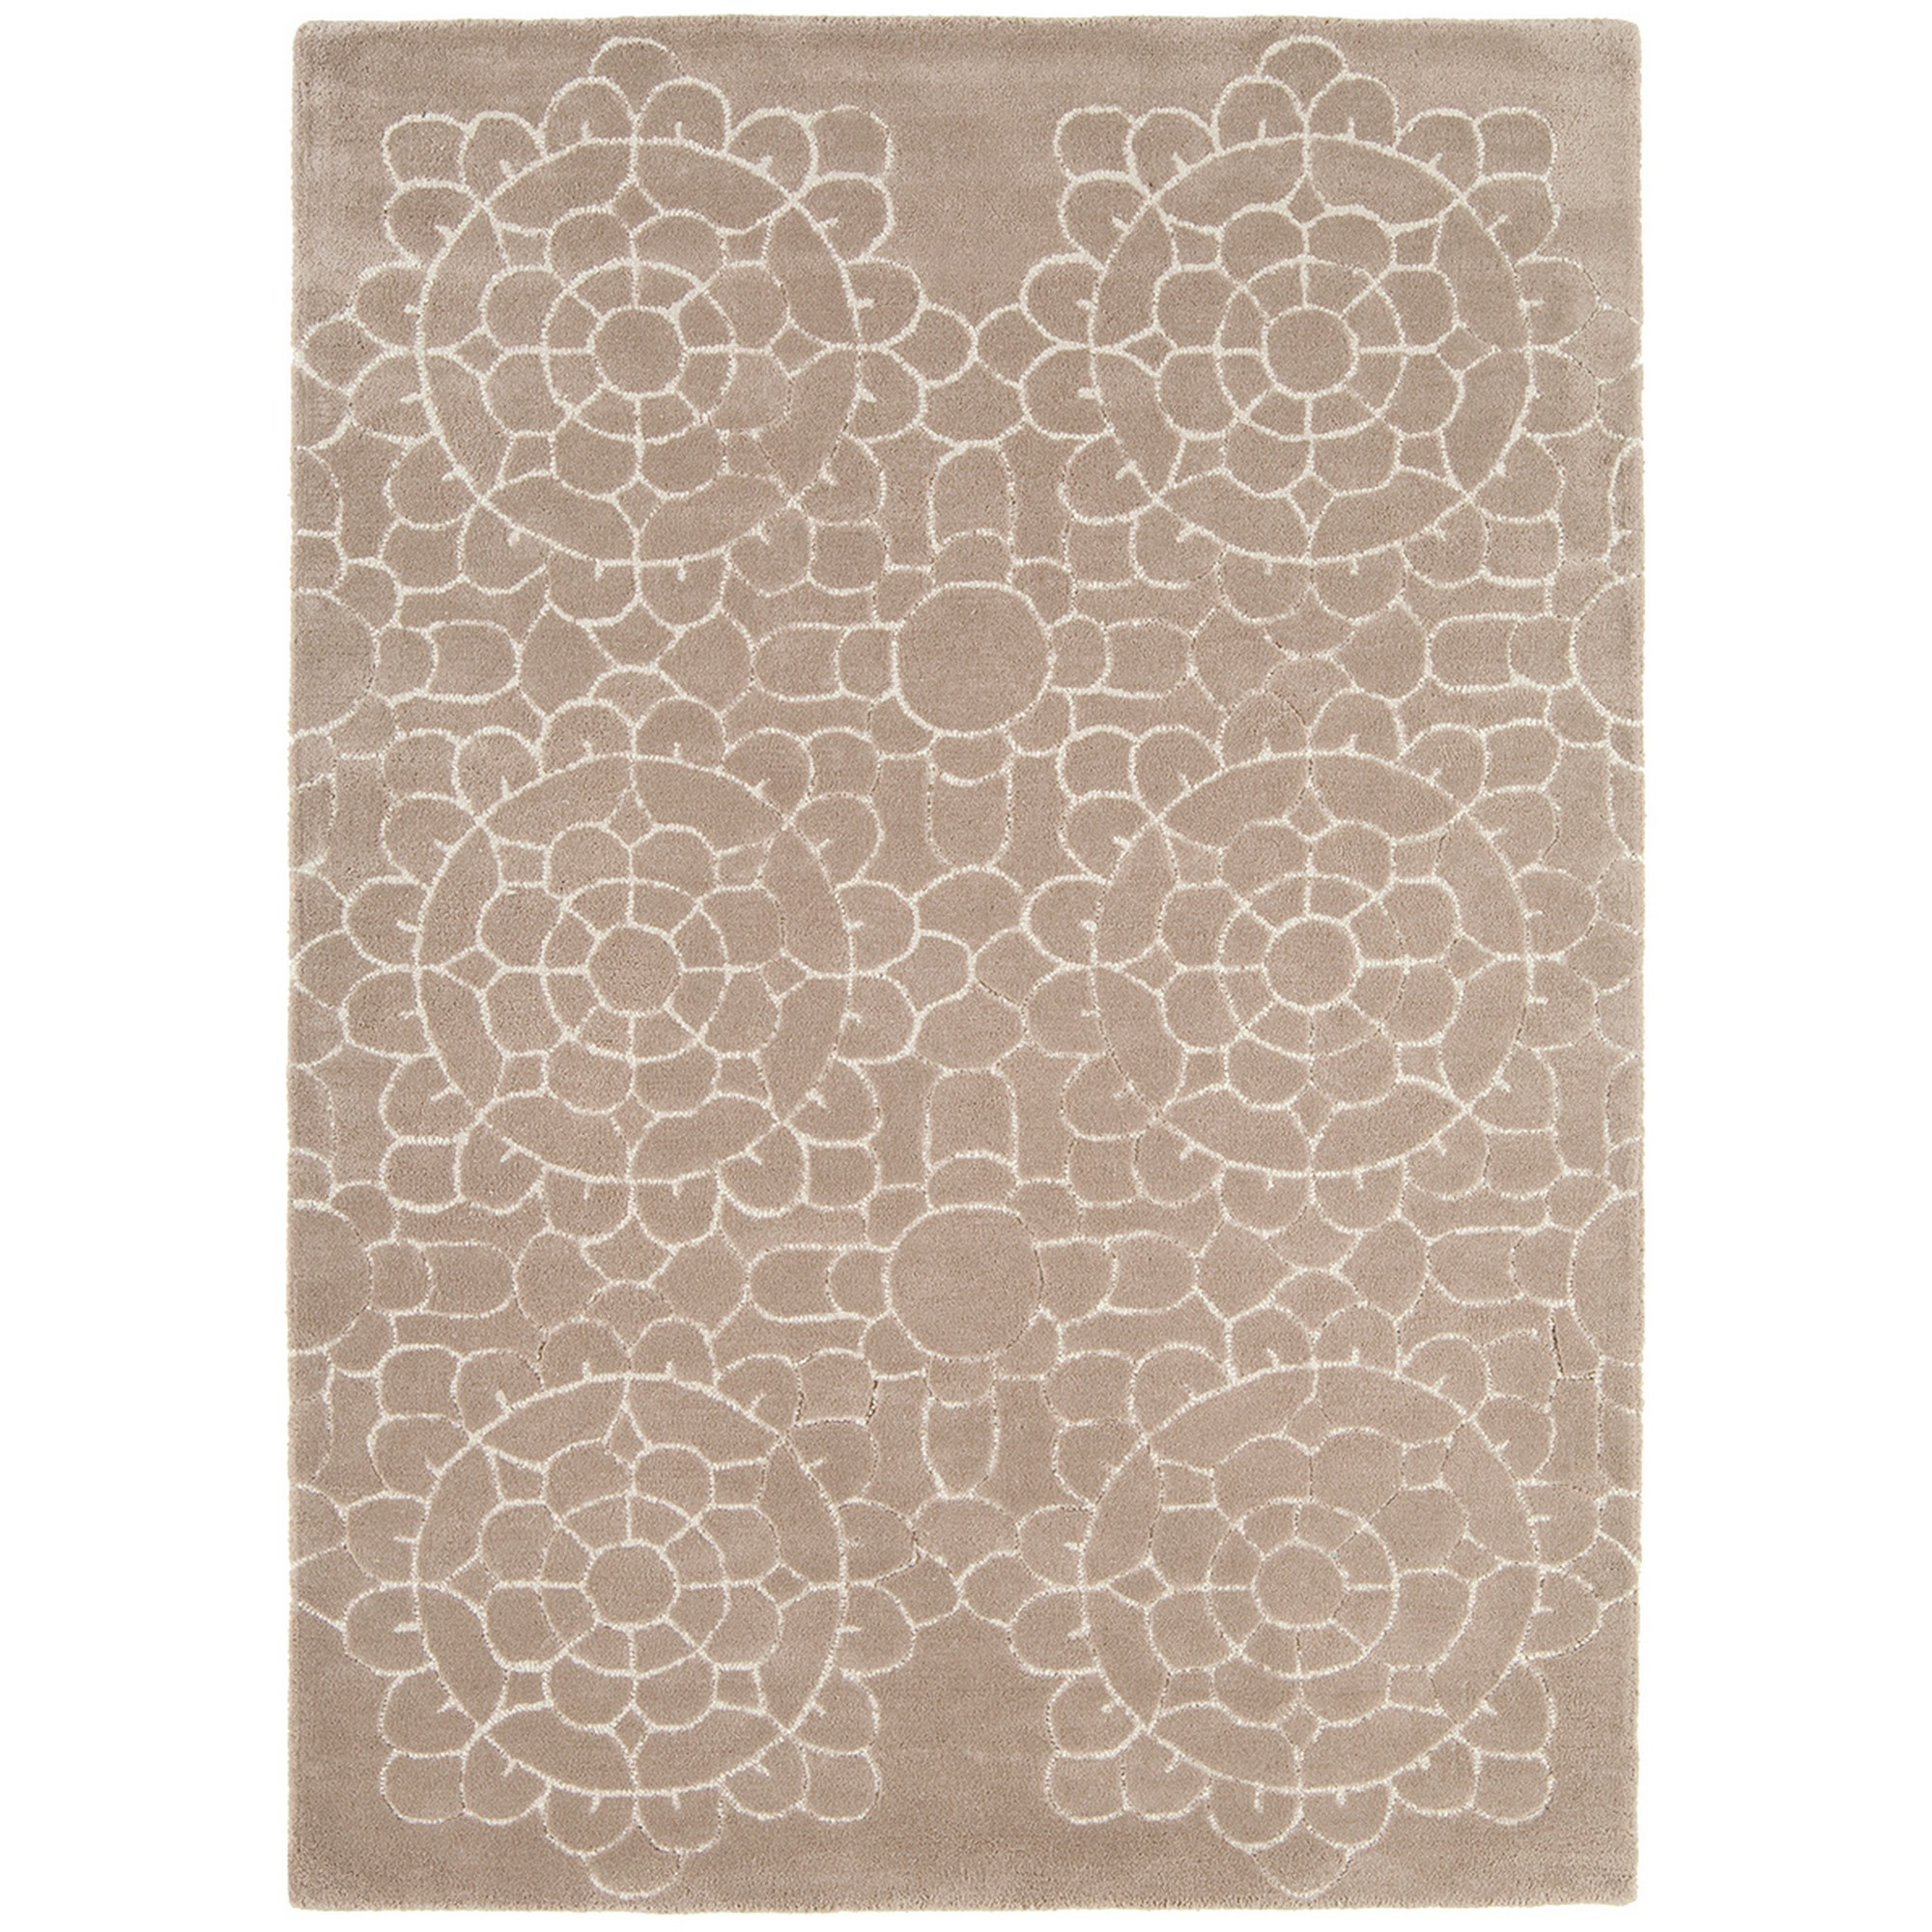 Matrix Crochet Rugs MAX18 Beige